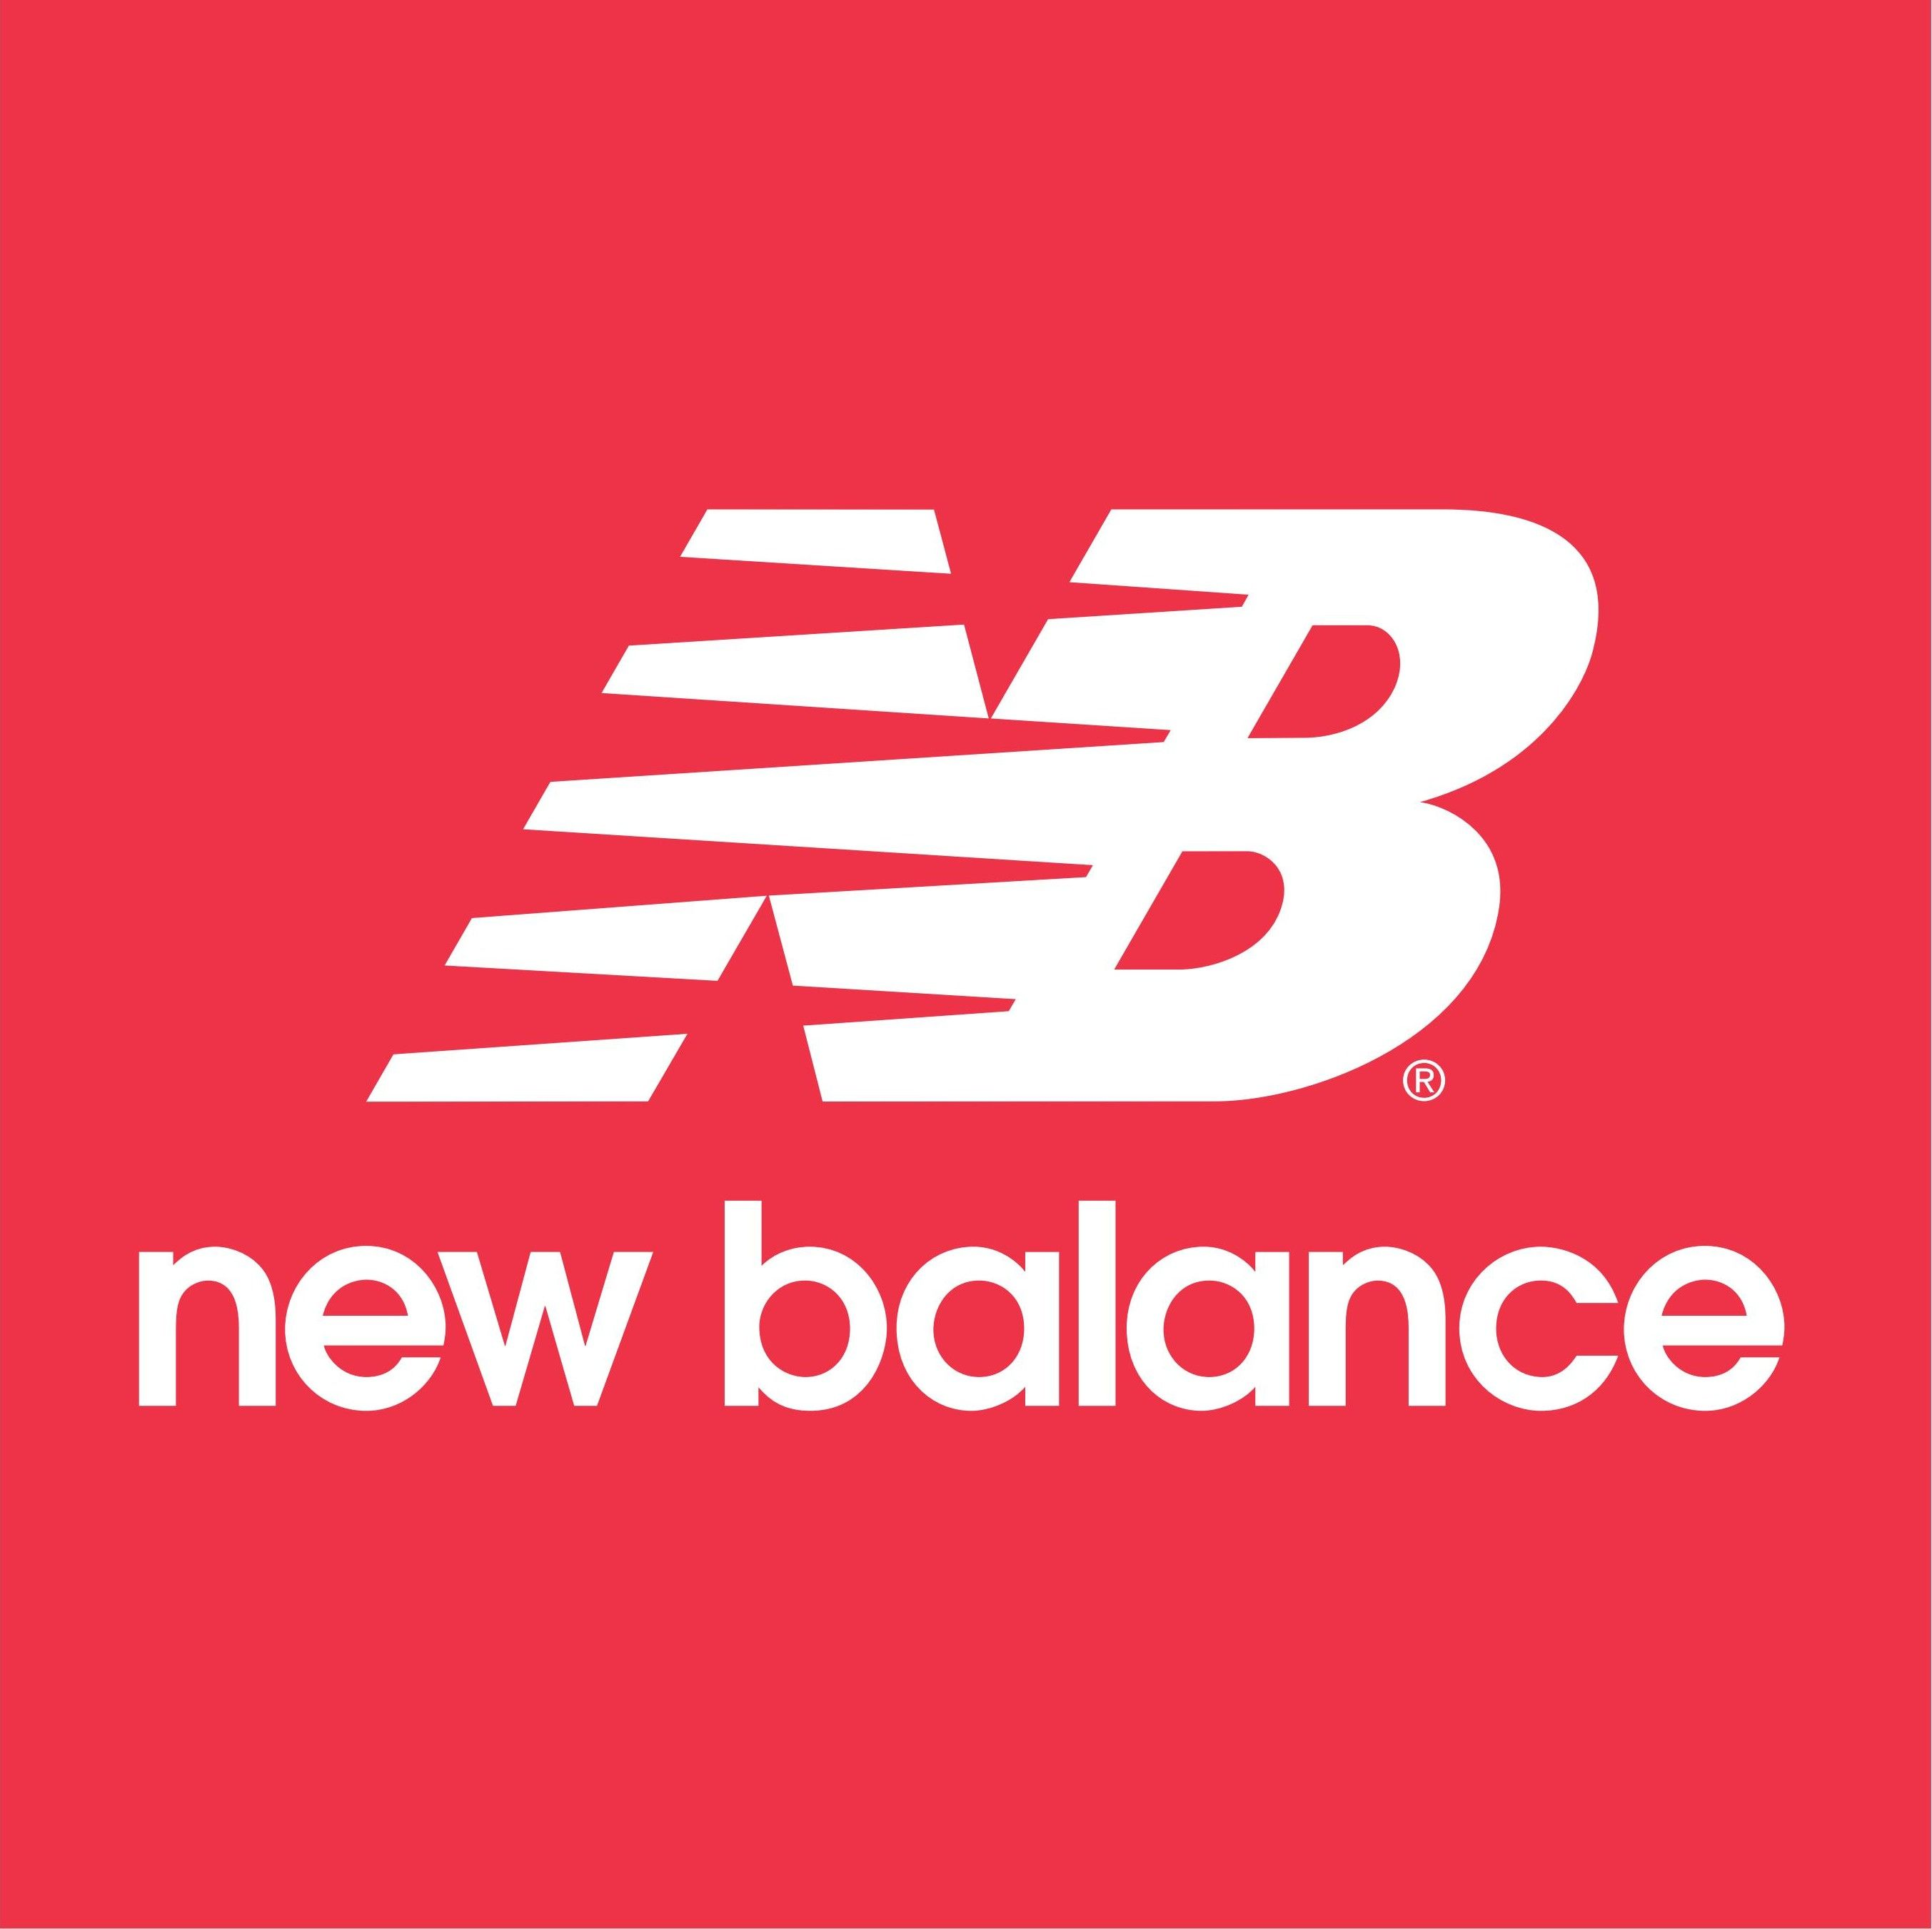 Vans logo vans off the wall off the wall brands and logos new balance logo eps file amipublicfo Choice Image